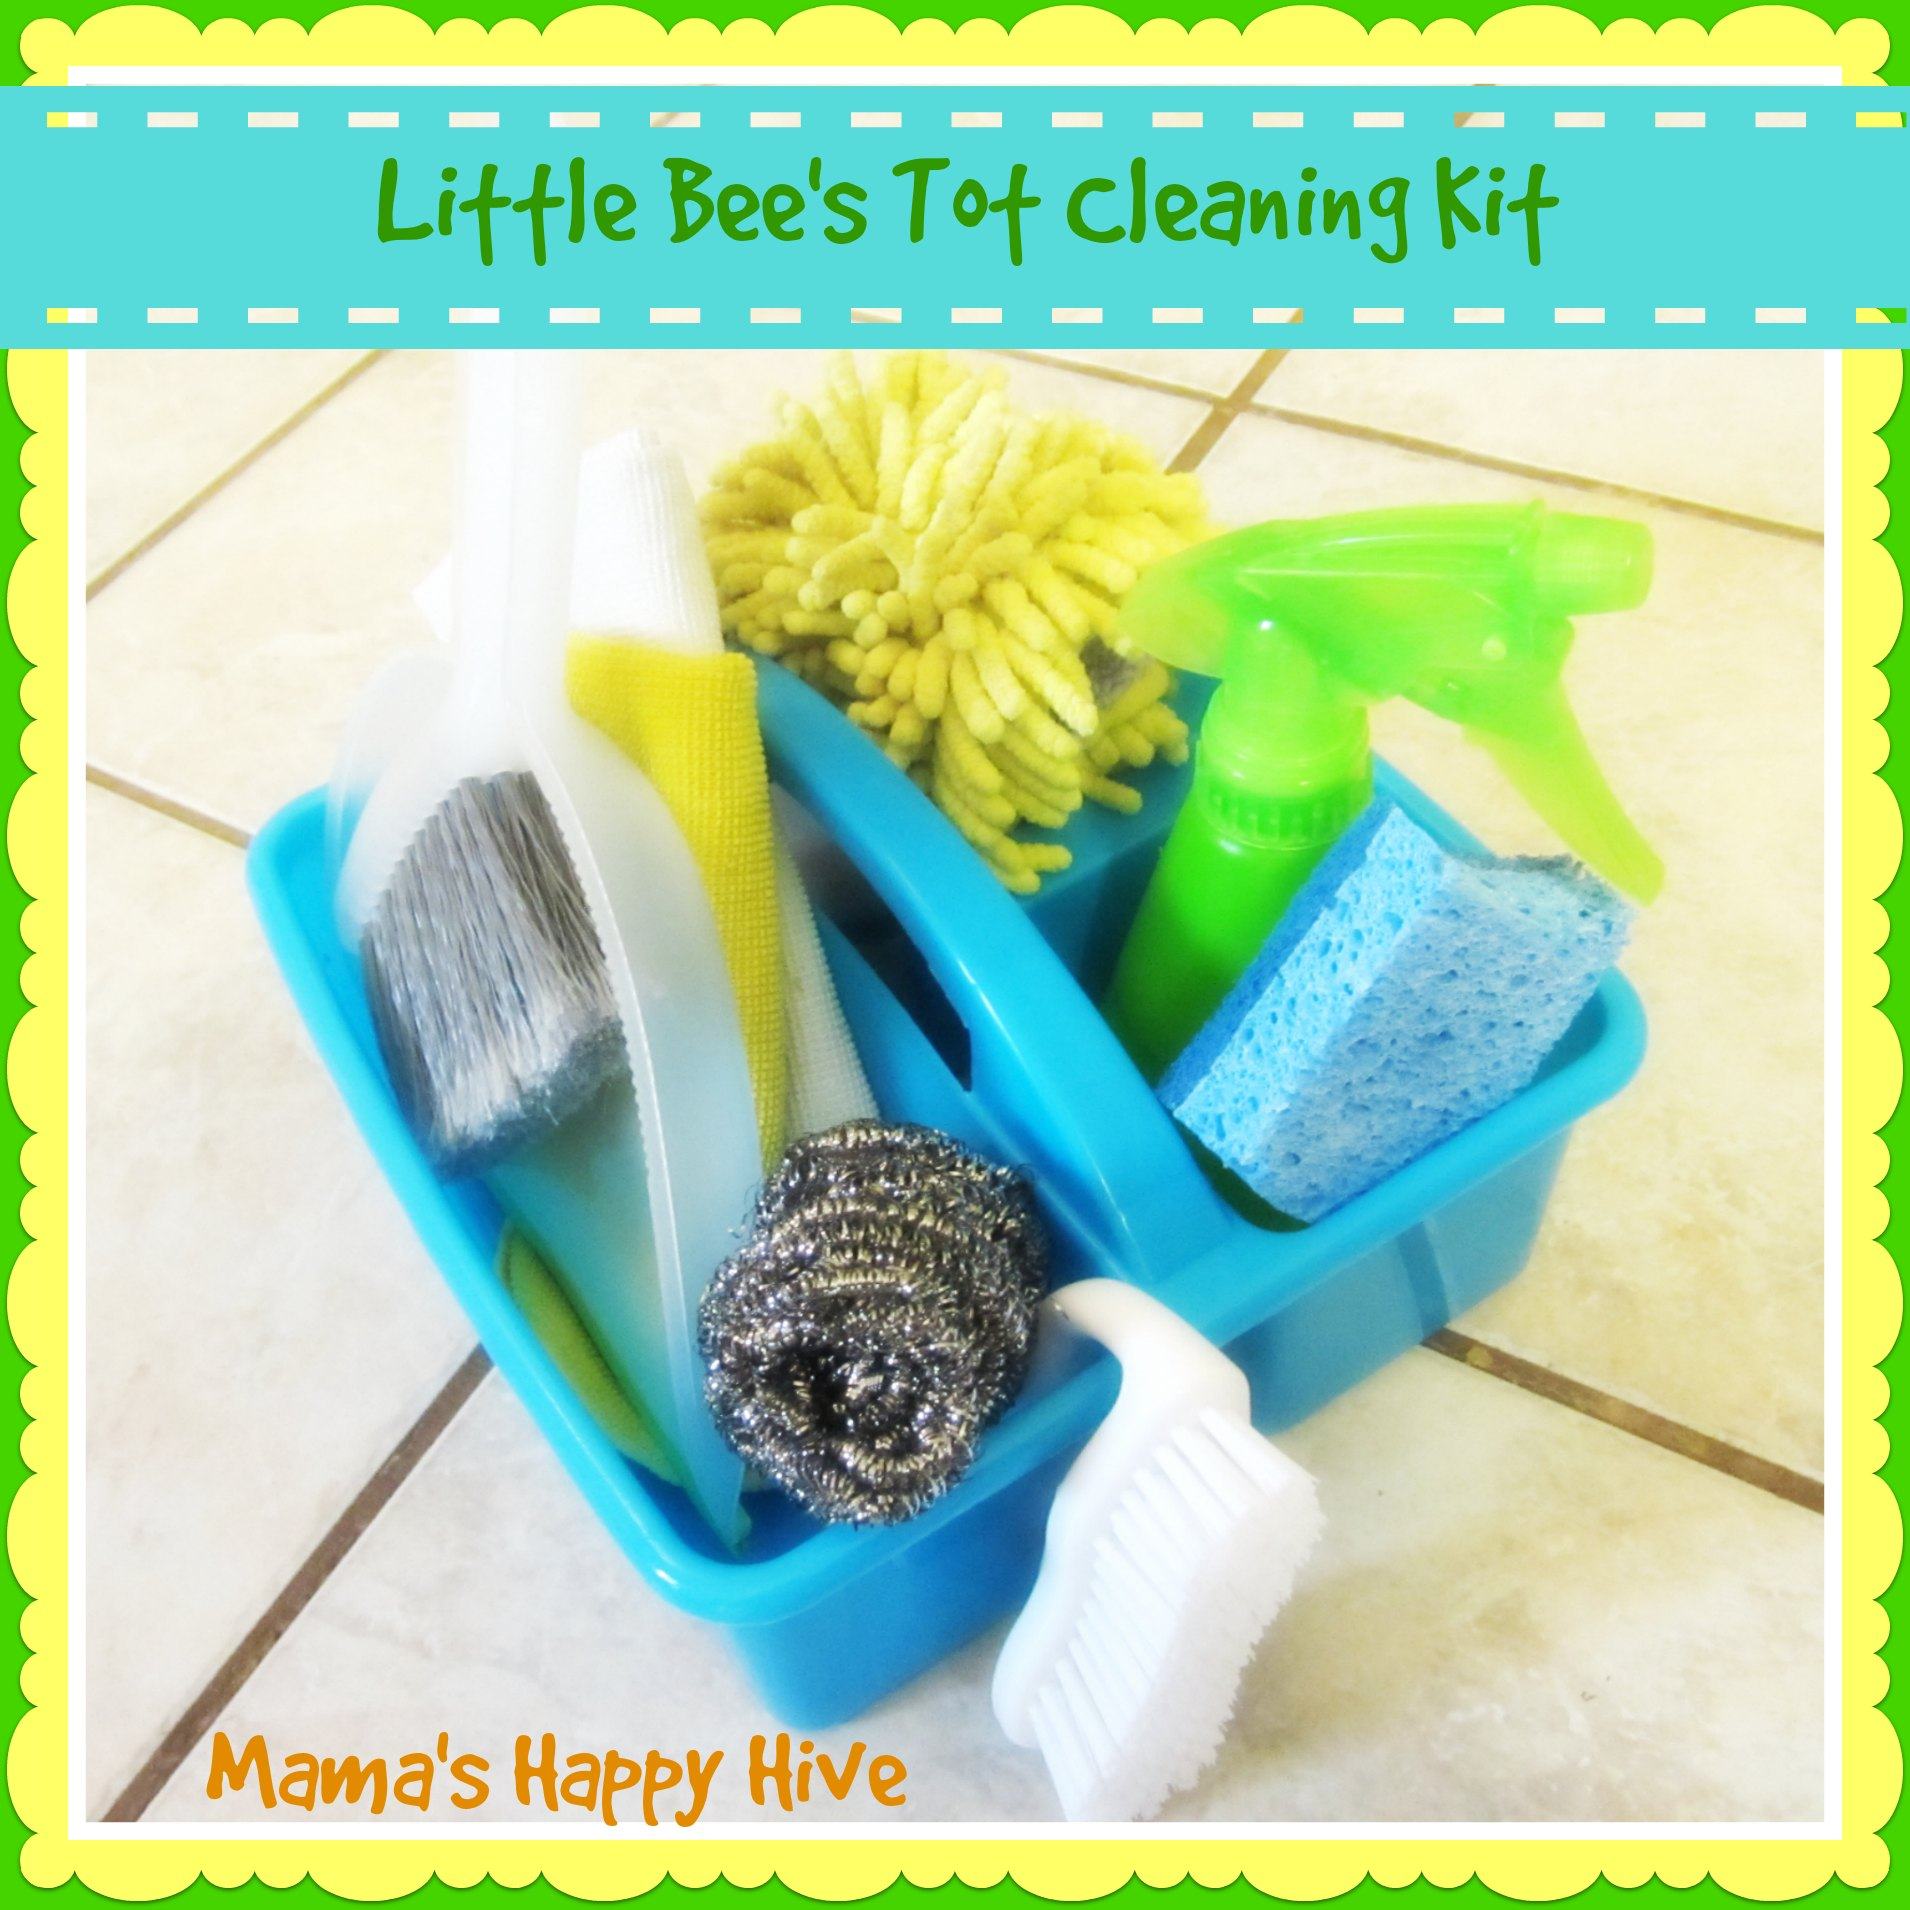 Little Bee's Tot Cleaning Kit - www.mamashappyhive.com